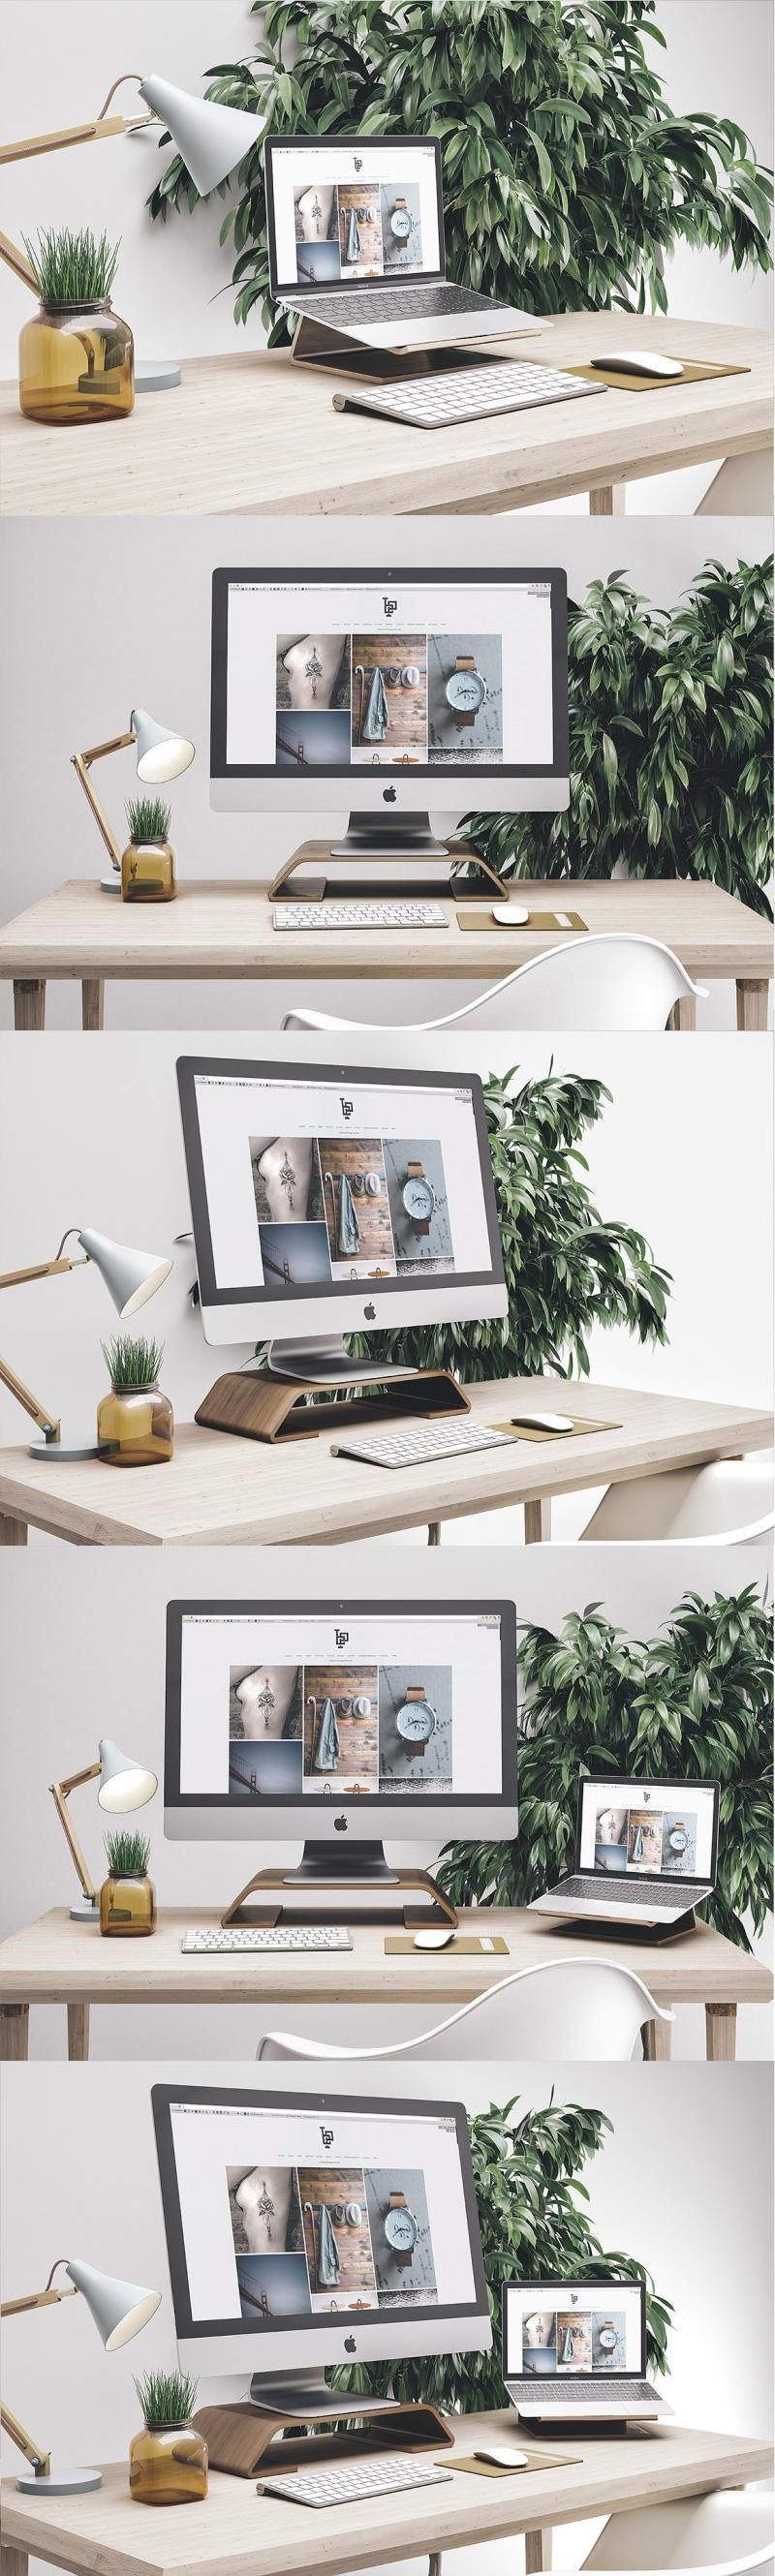 Workspace Mockup Set 5